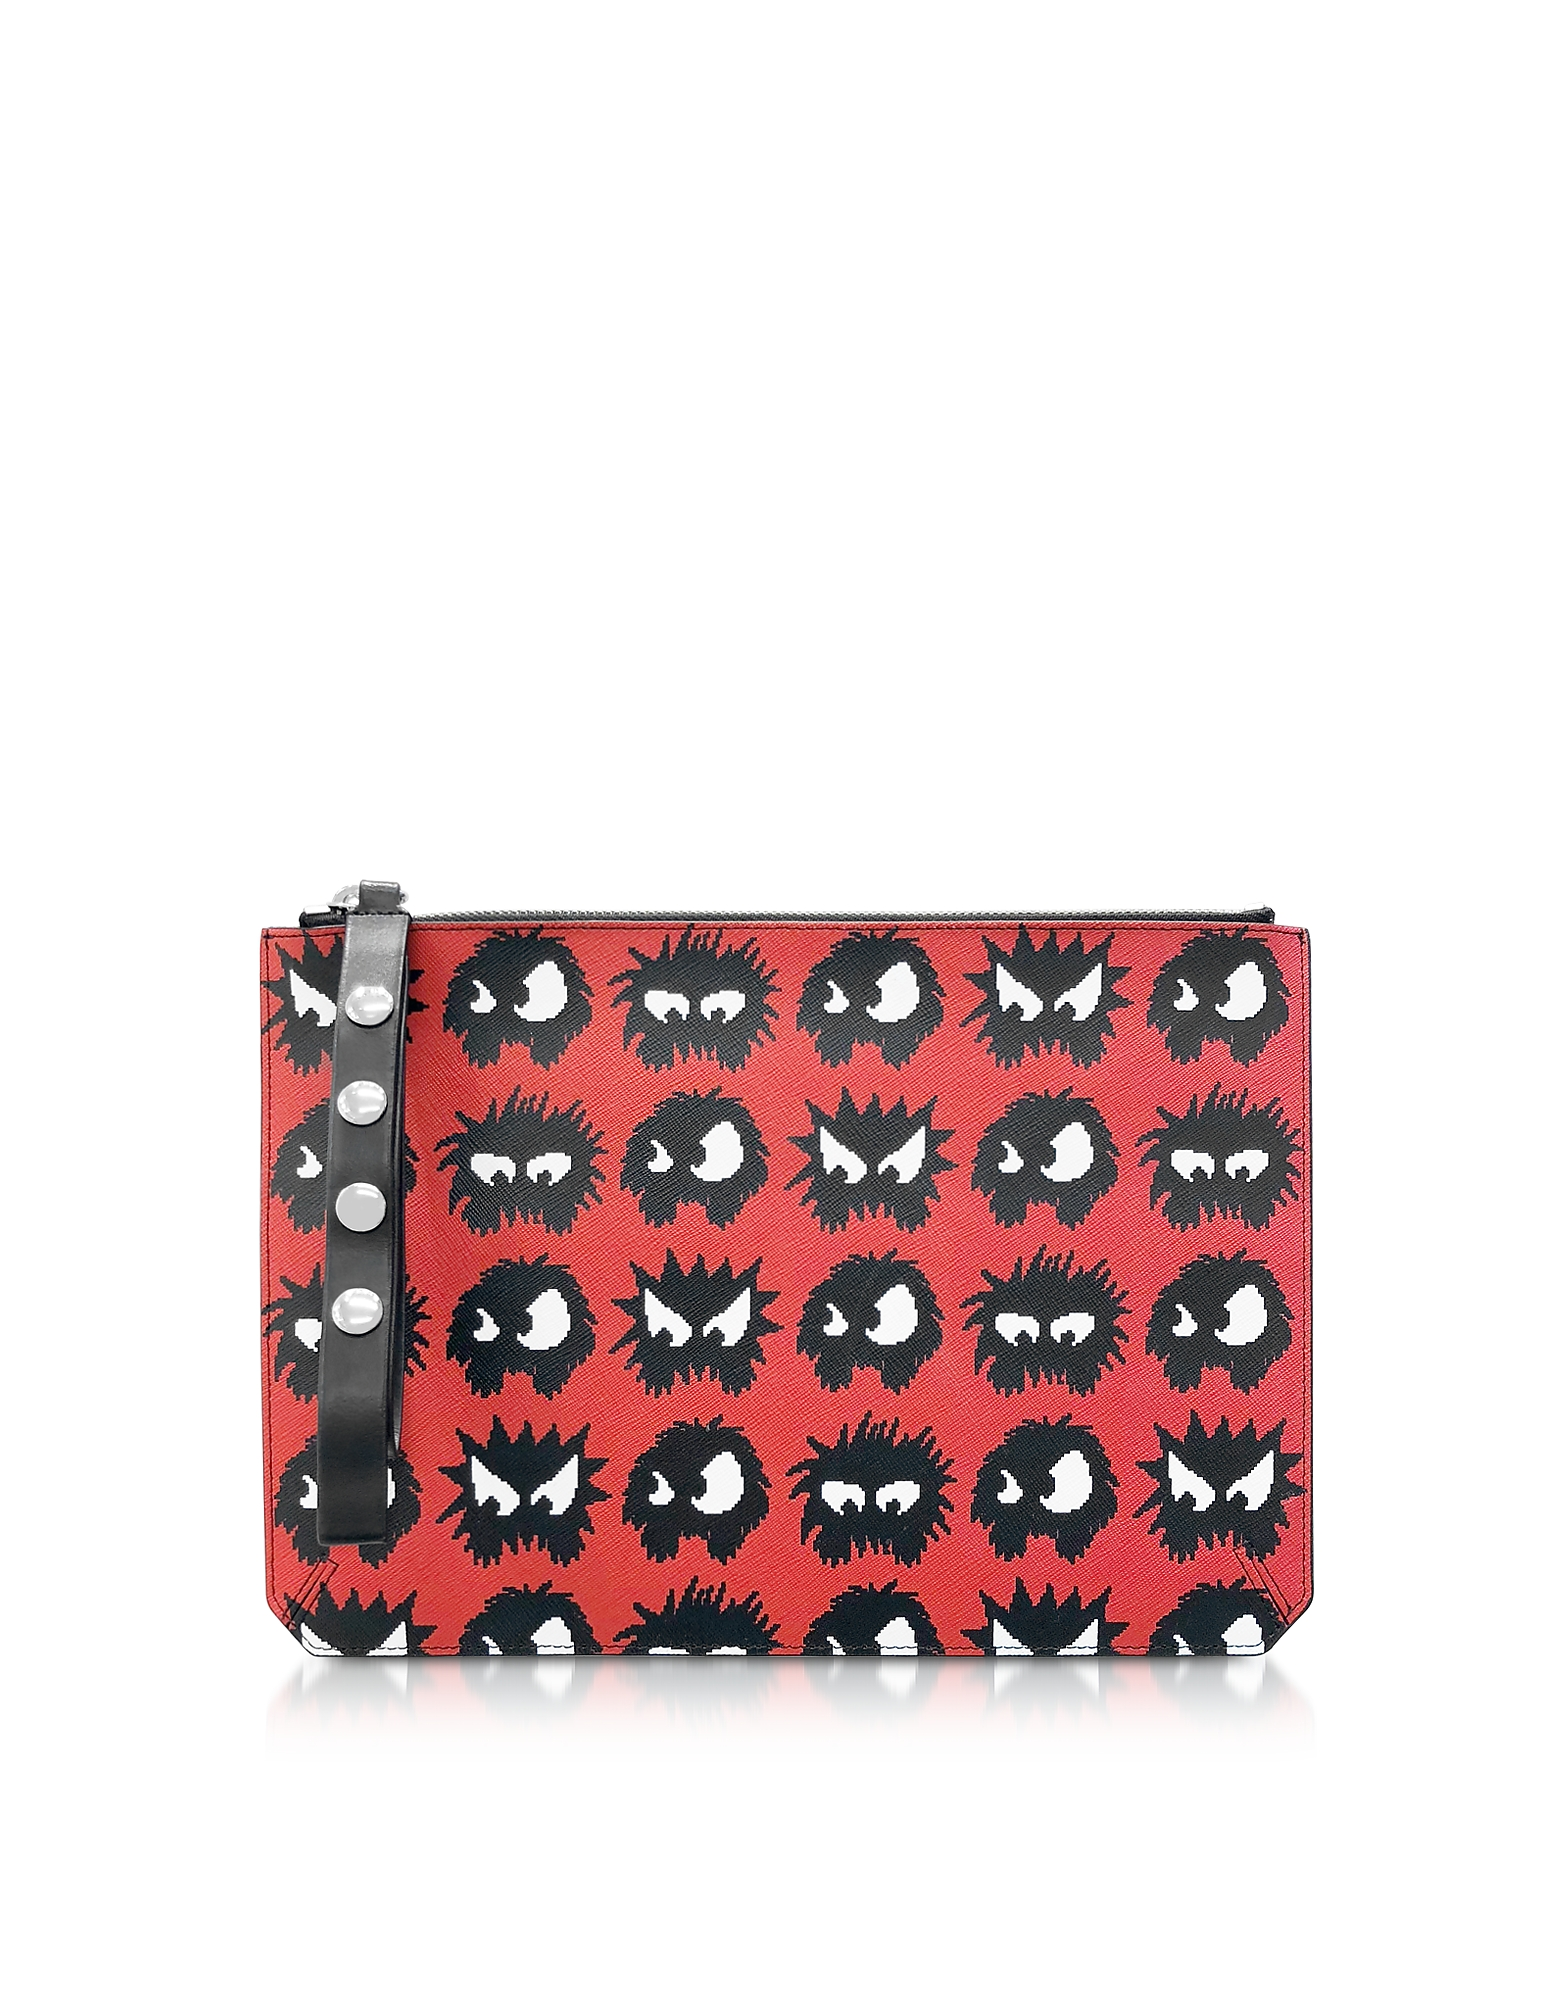 McQ Alexander McQueen Designer Handbags, Classic Red Knit Monster Tablet Pouch